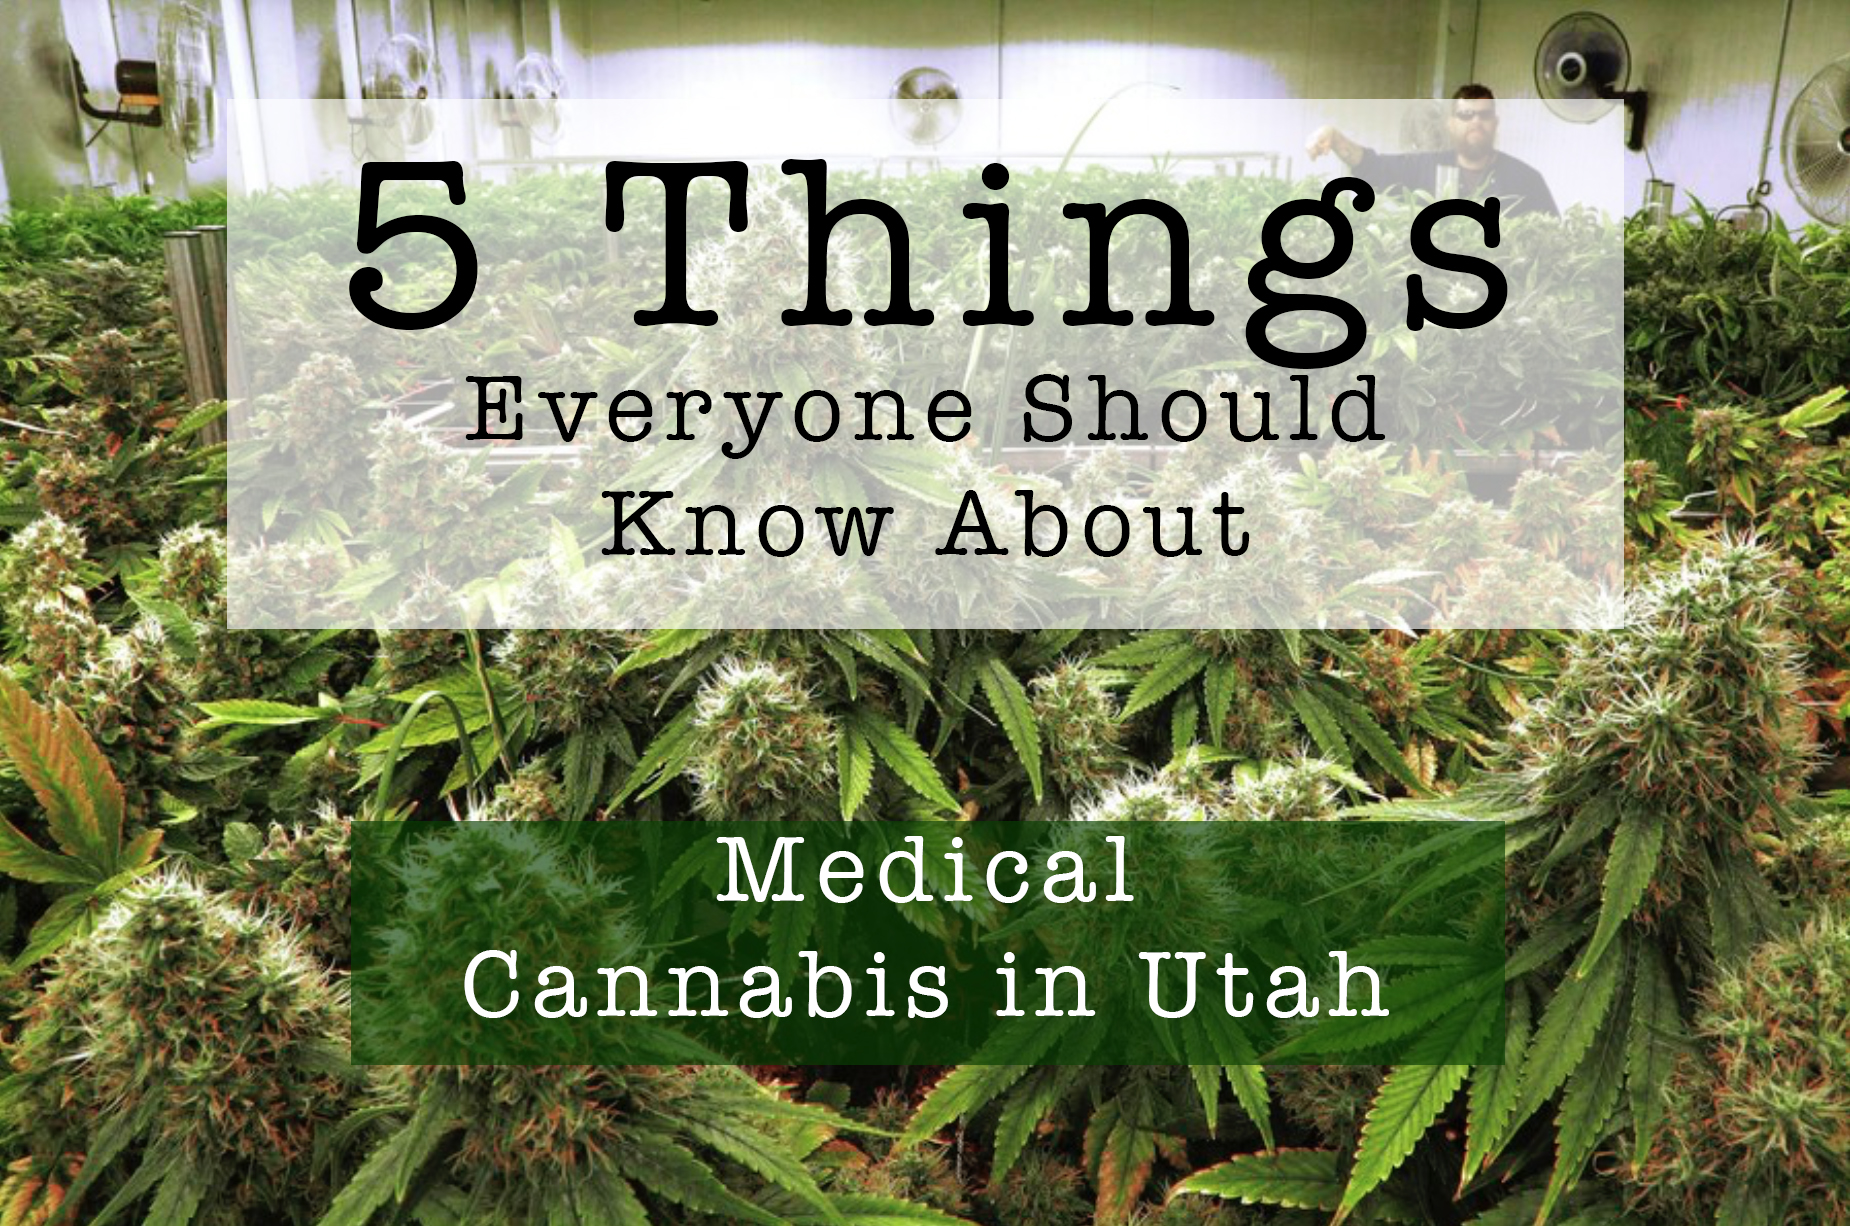 5 Things You Should Know About Medical Cannabis in Utah